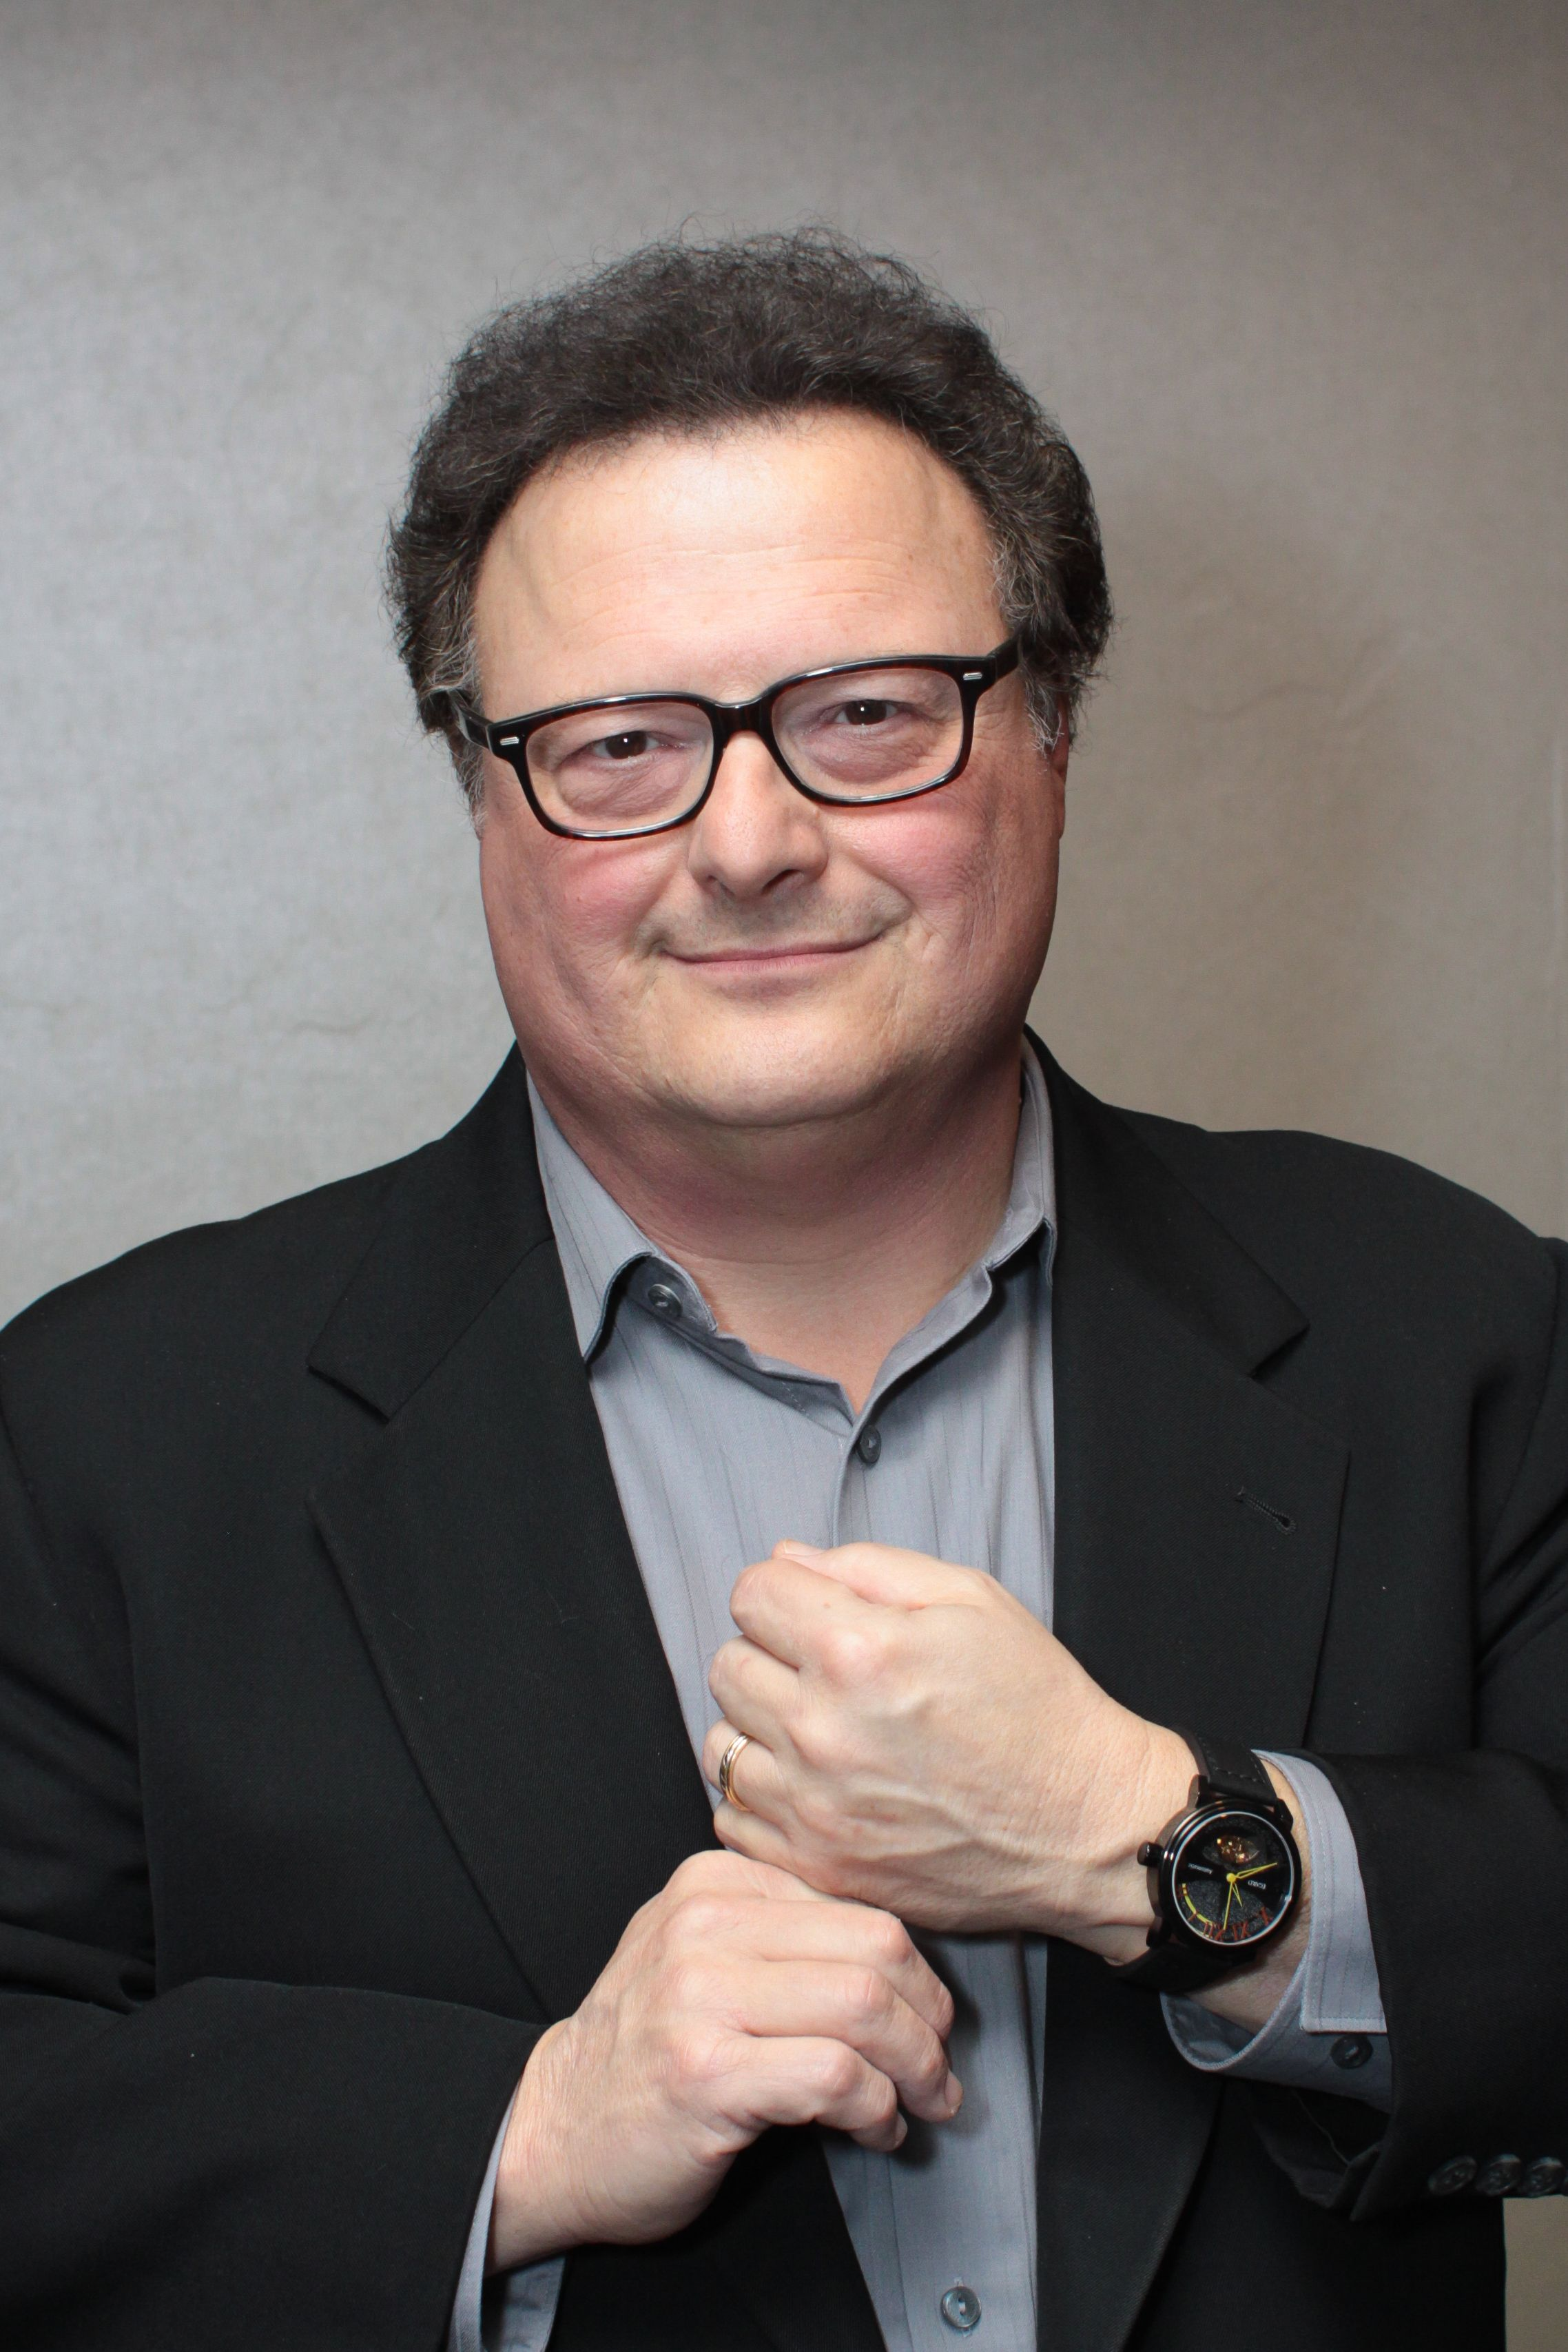 wayne knight imdb